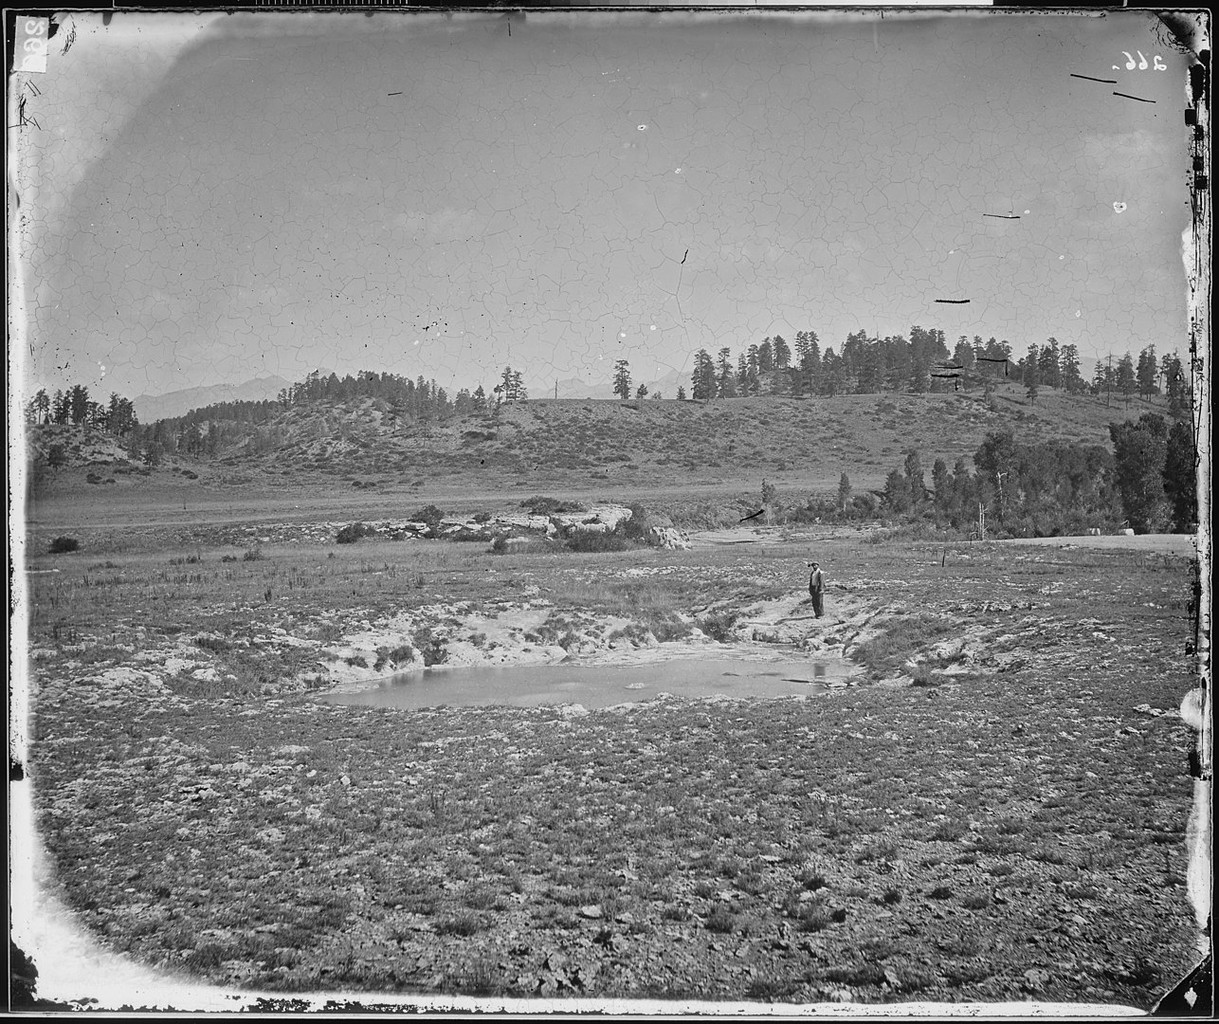 The springs for which the town was named, photographed in 1874